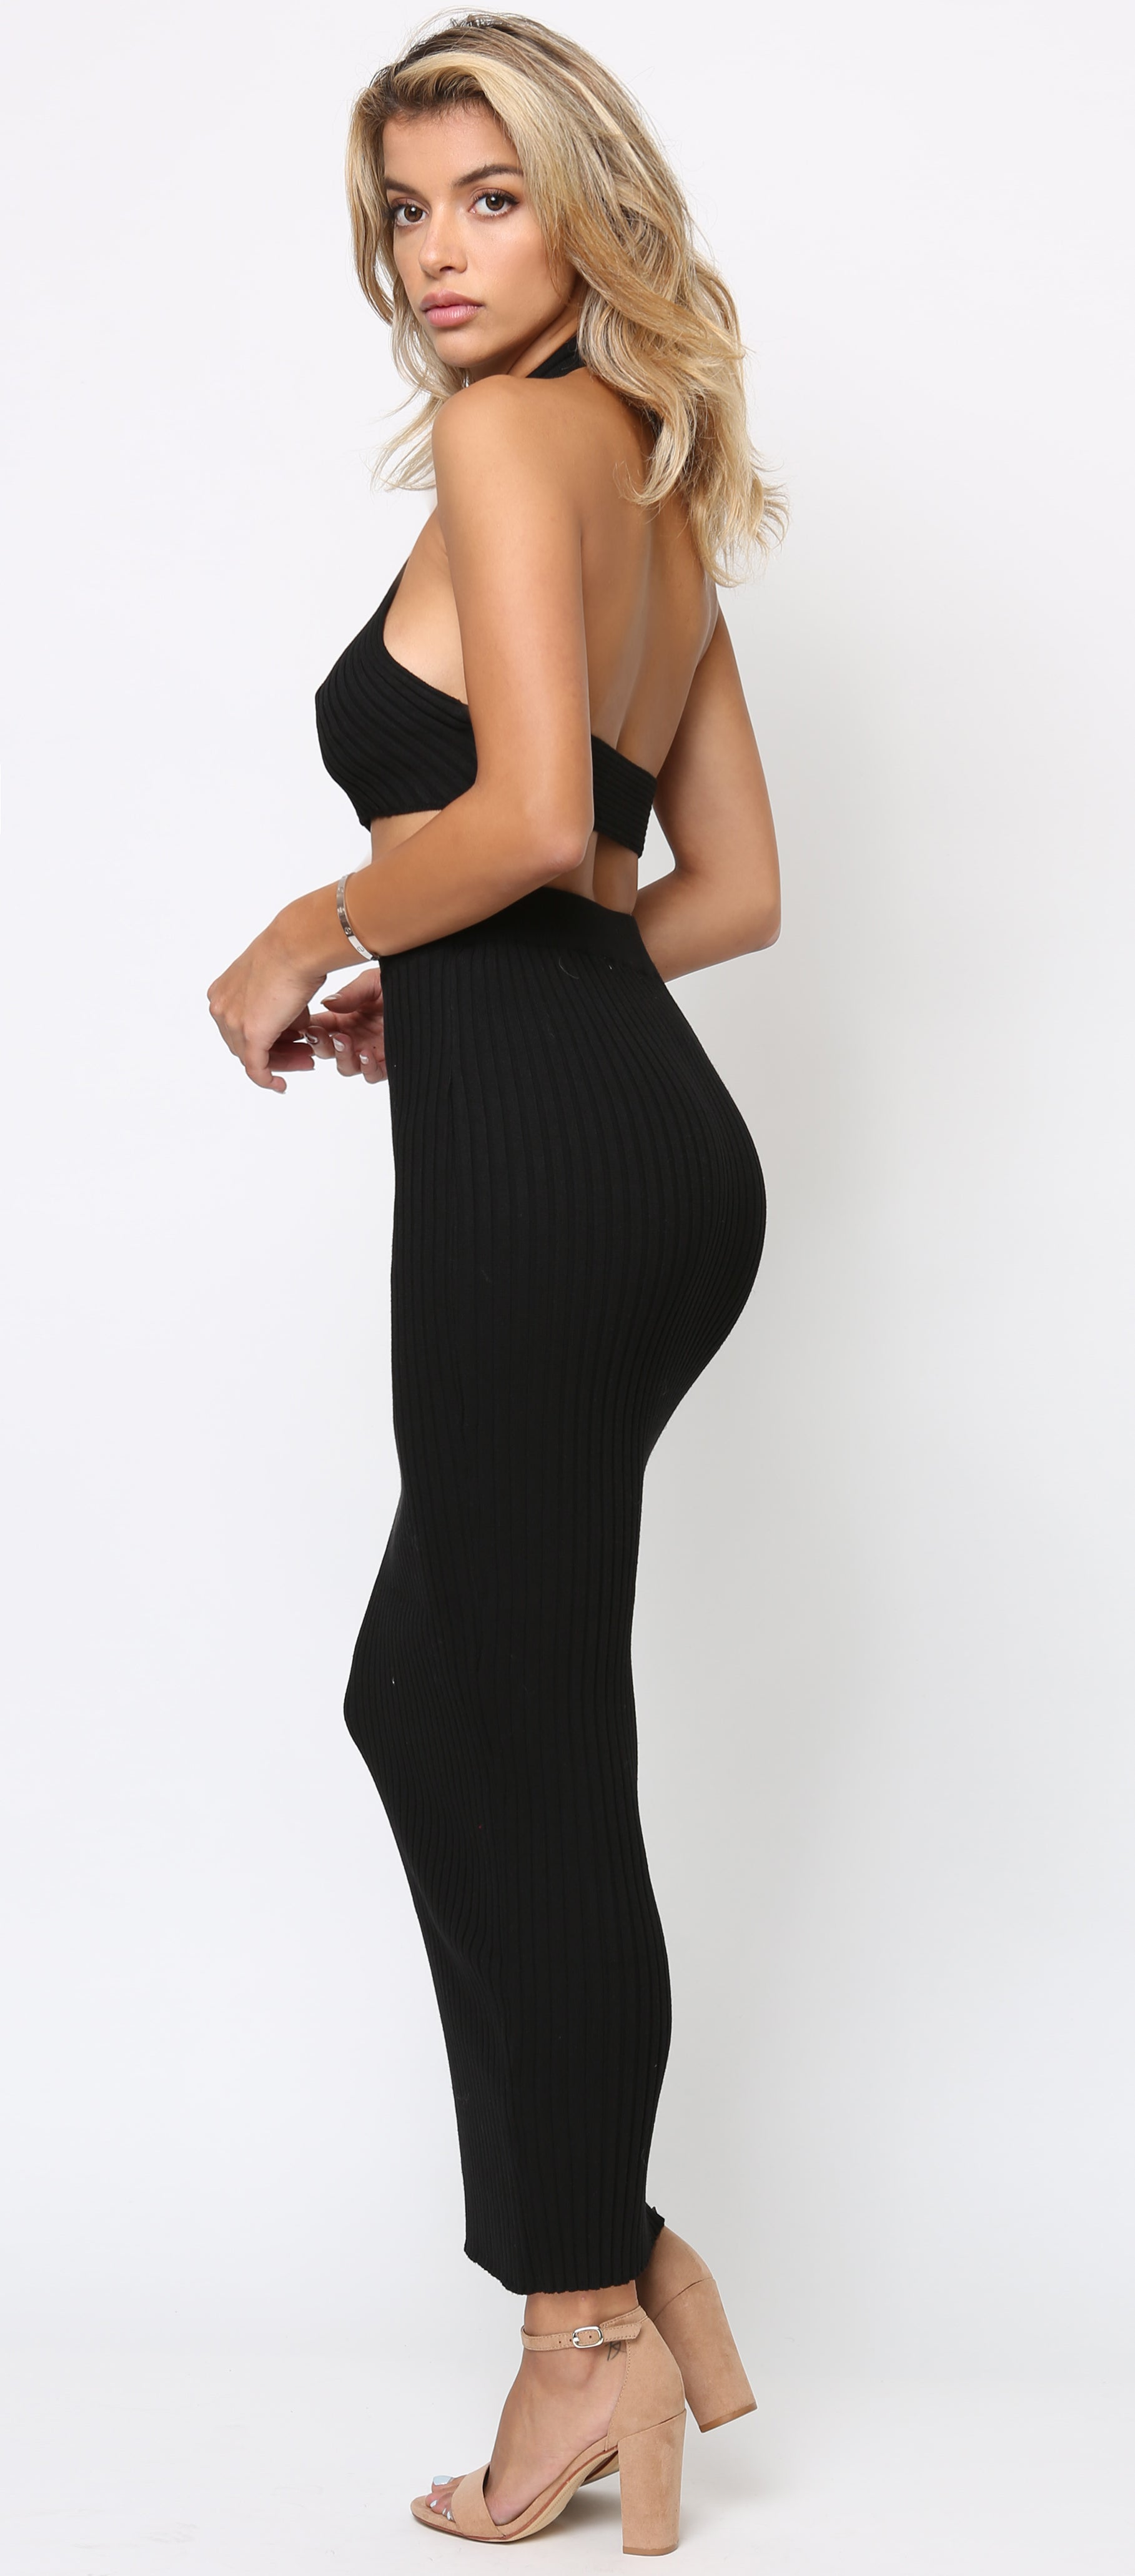 Simone Black Halter Neck Ribbed Top And Skirt Maxi Set